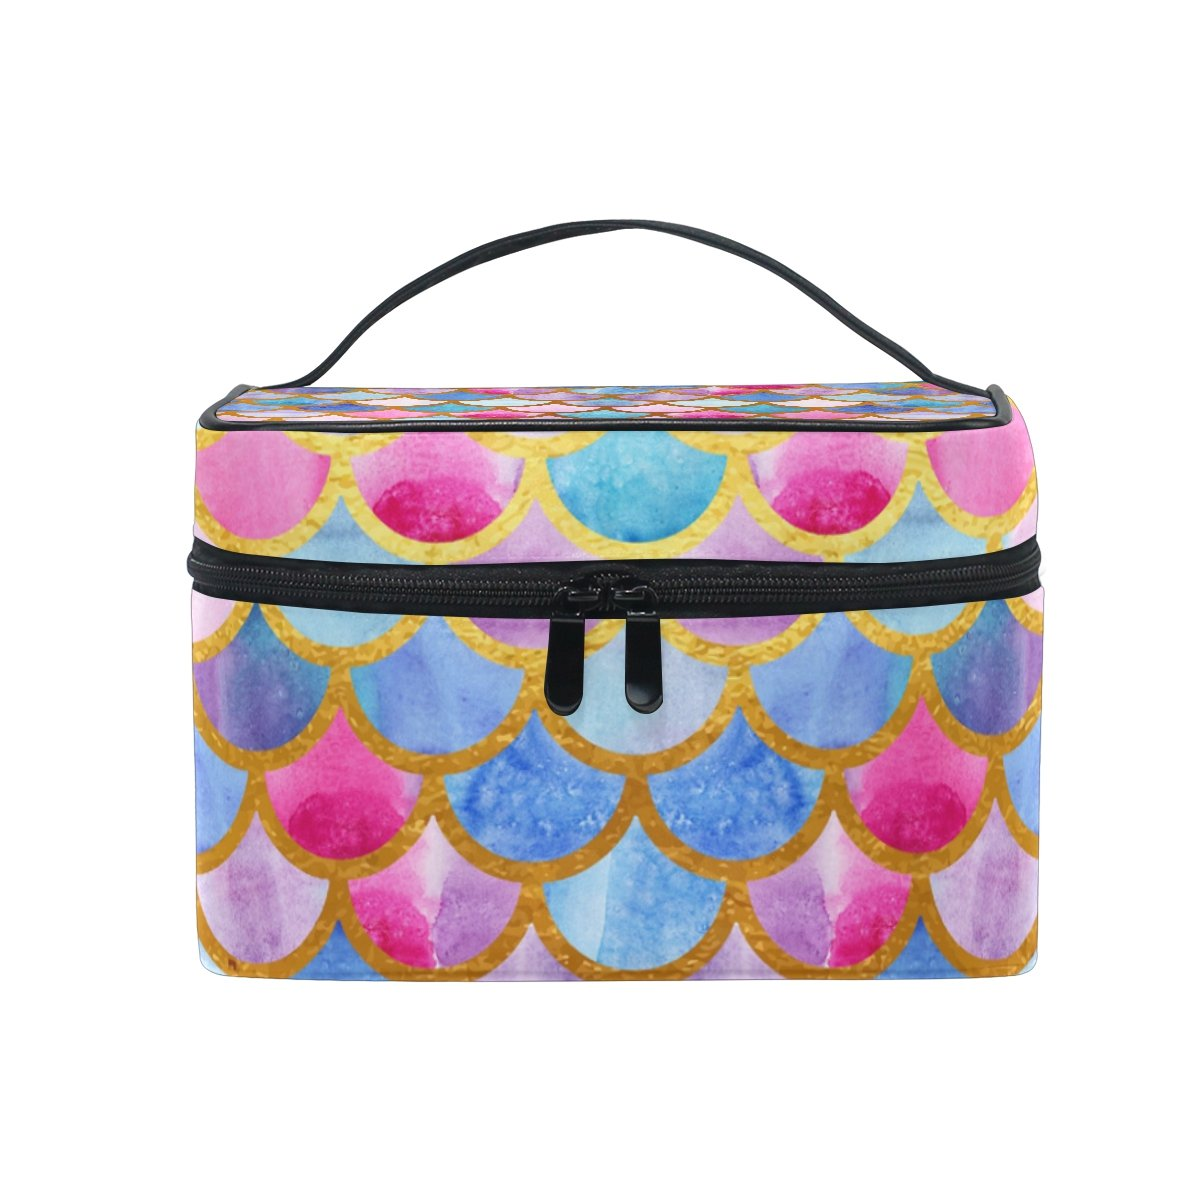 KUWT Bright Watercolor Mermaid Scales Women Travel Cosmetic Bag Portable Makeup Train Case Toiletry Bag Beauty Organizer